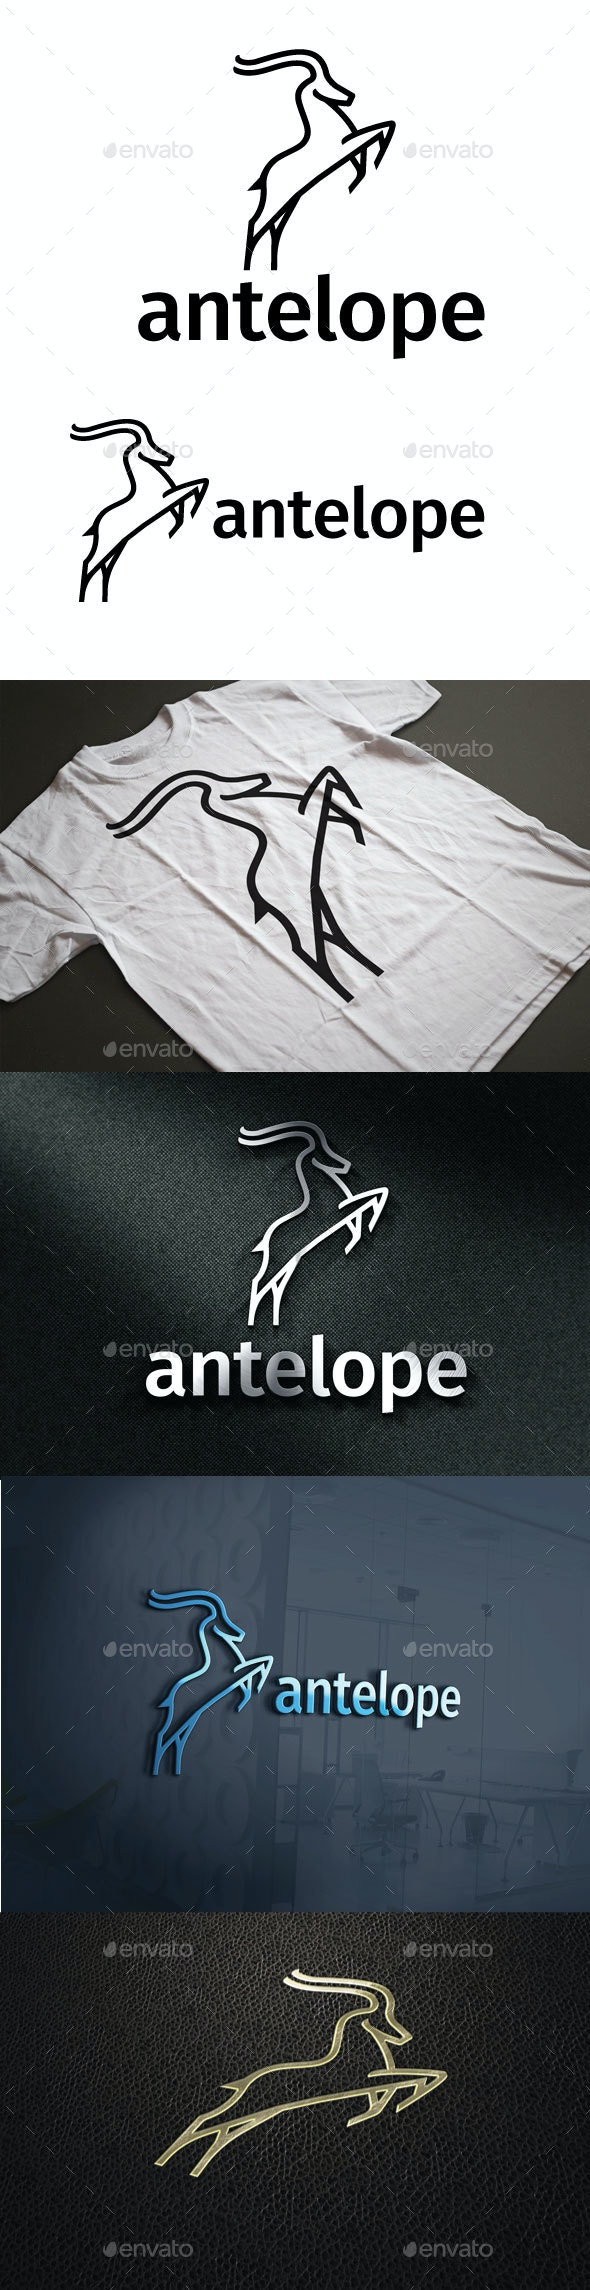 Antelope Logo - Animals Logo Templates